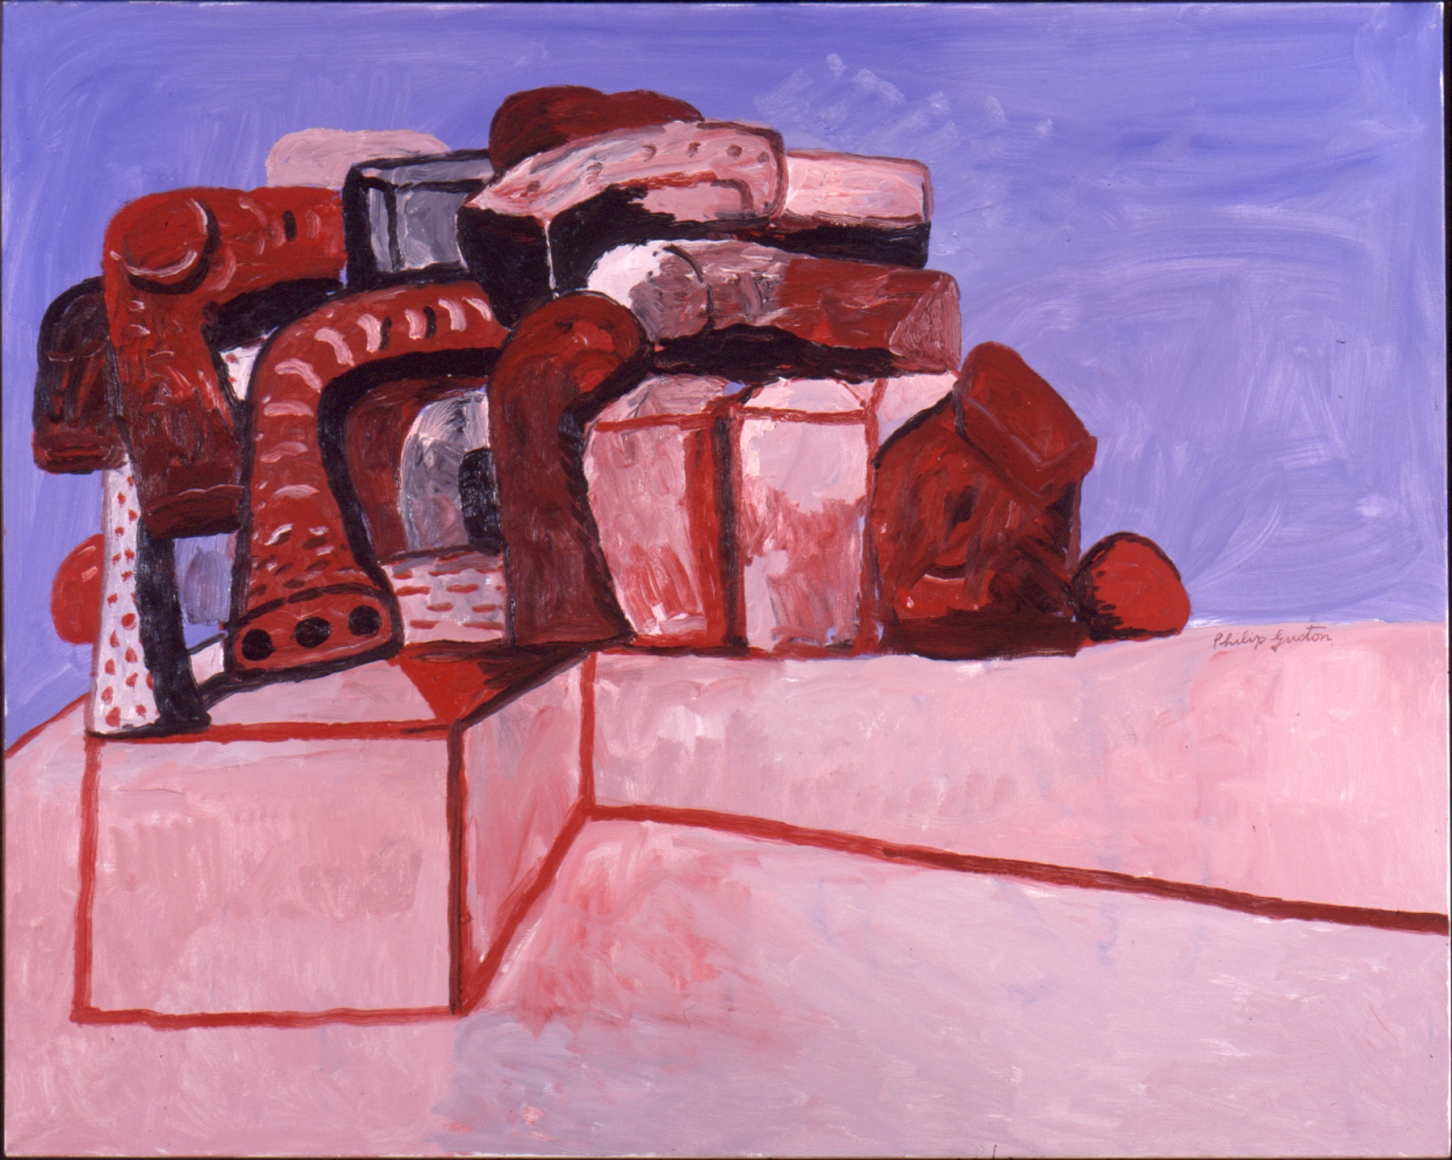 PHILIP GUSTON Ledge, 1979